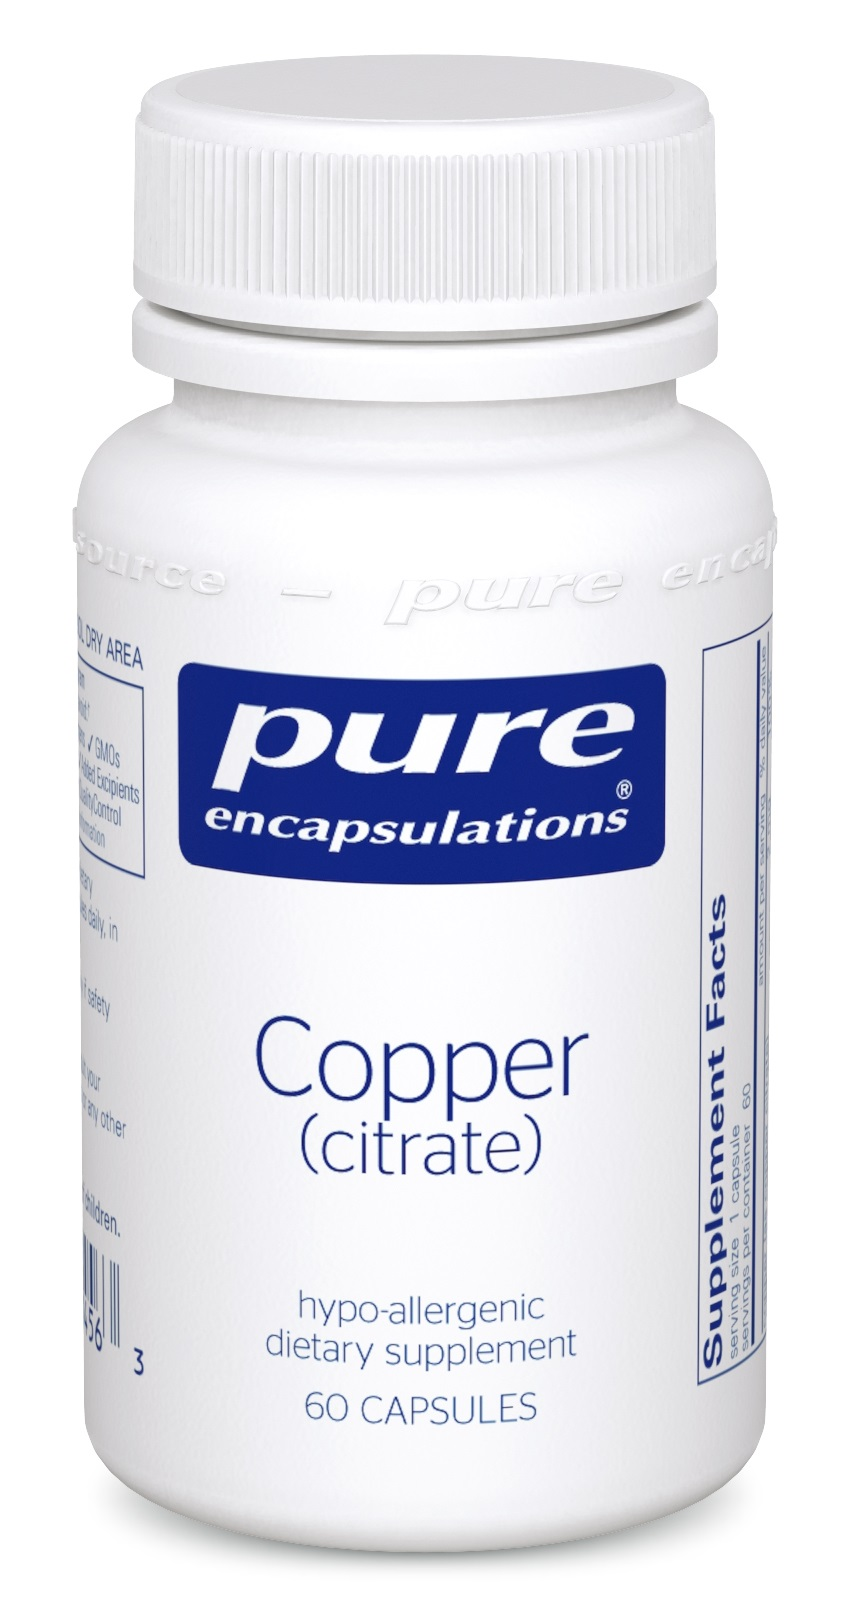 Pure Encapsulations Copper (citrate)